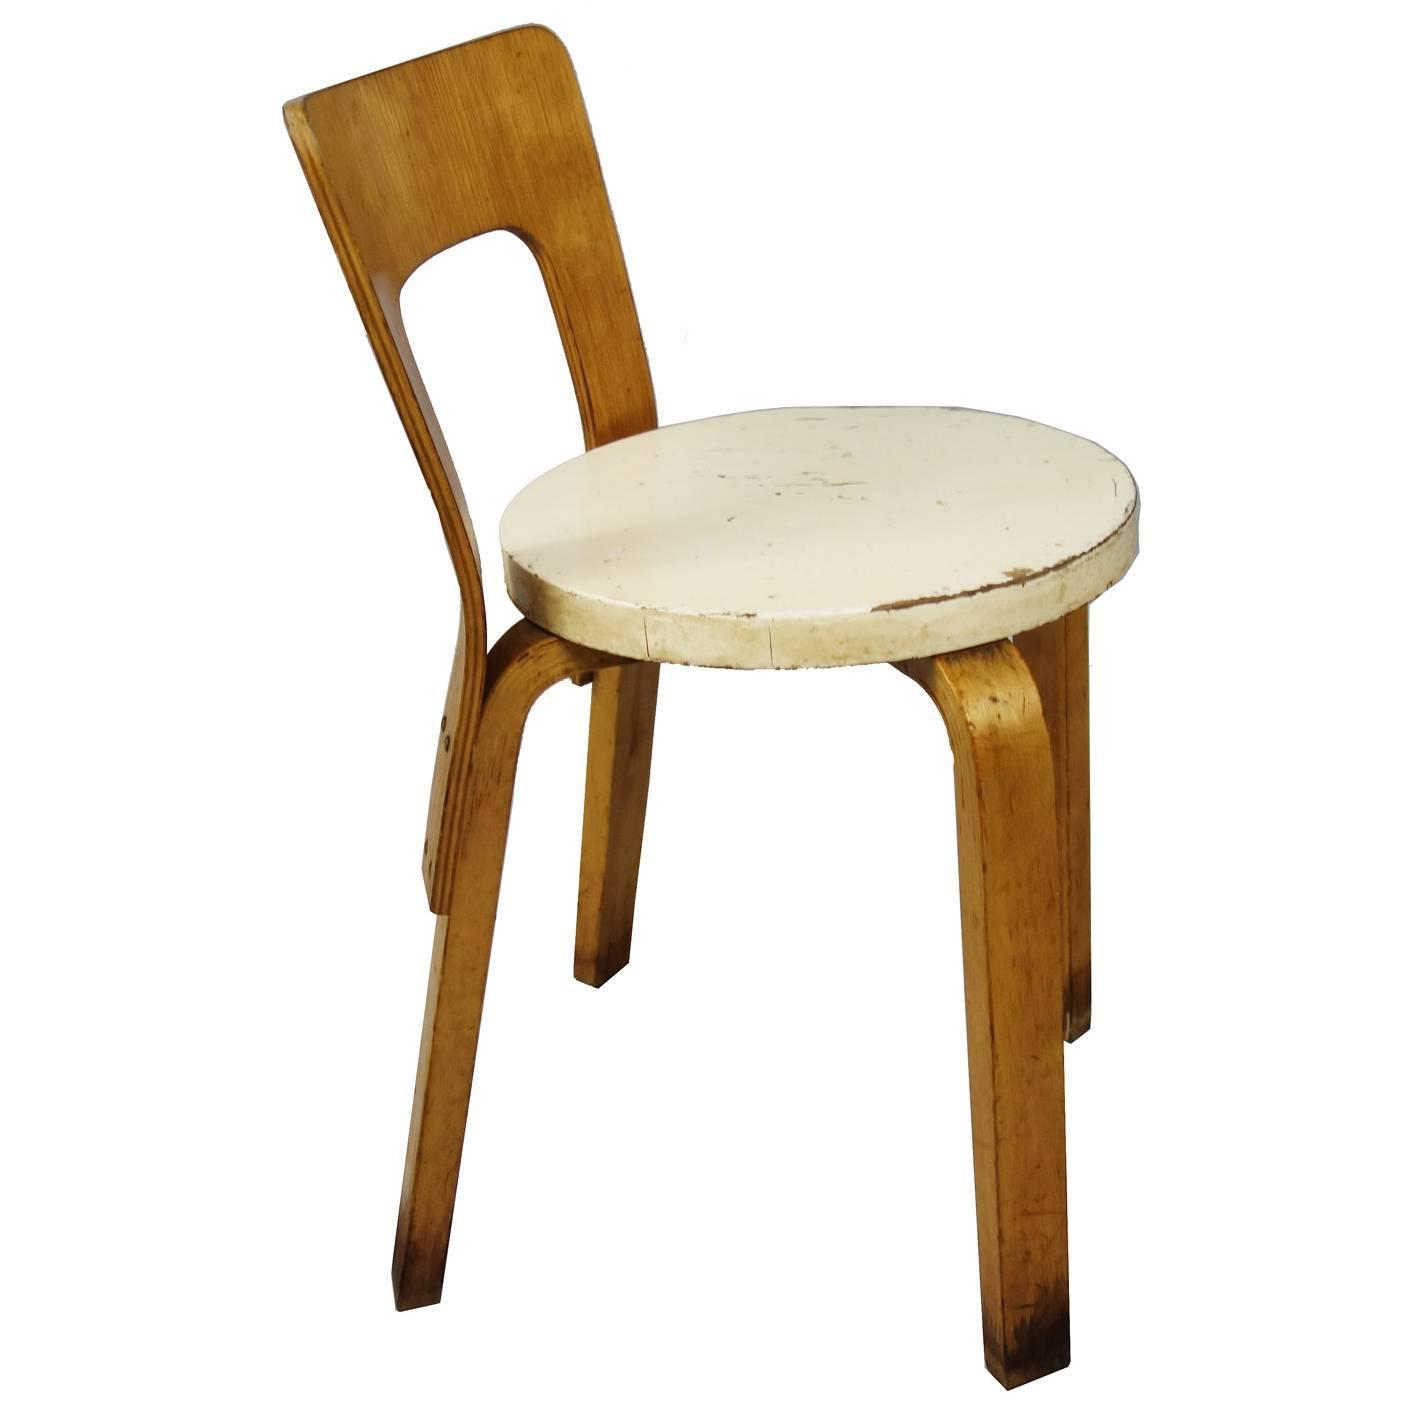 Early alvar aalto chair stool model 60 at 1stdibs for Alvar aalto chaise